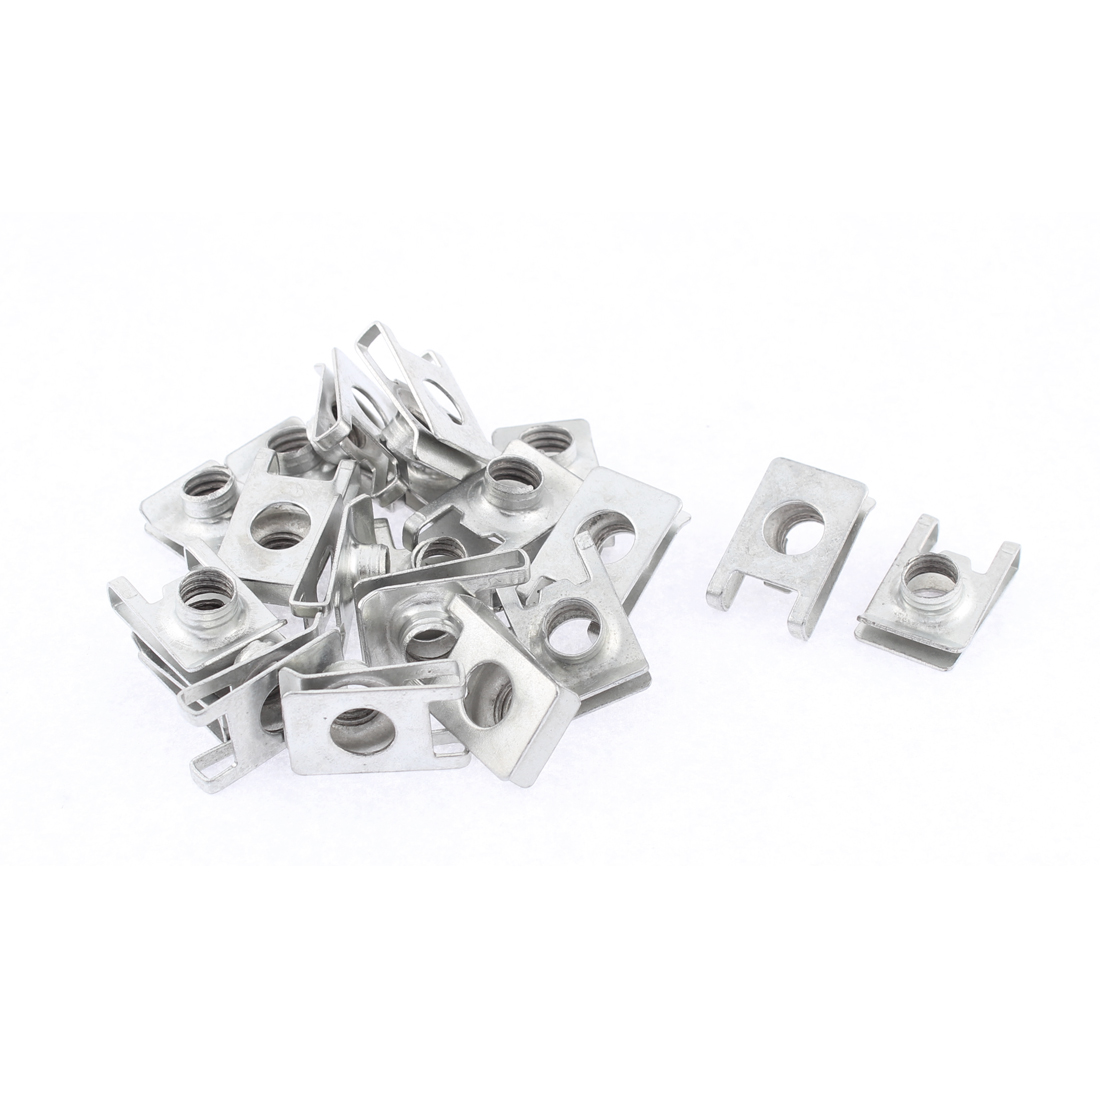 20Pcs Auto Dashboard Panel Fender Screw U Type Clips Speed Nuts